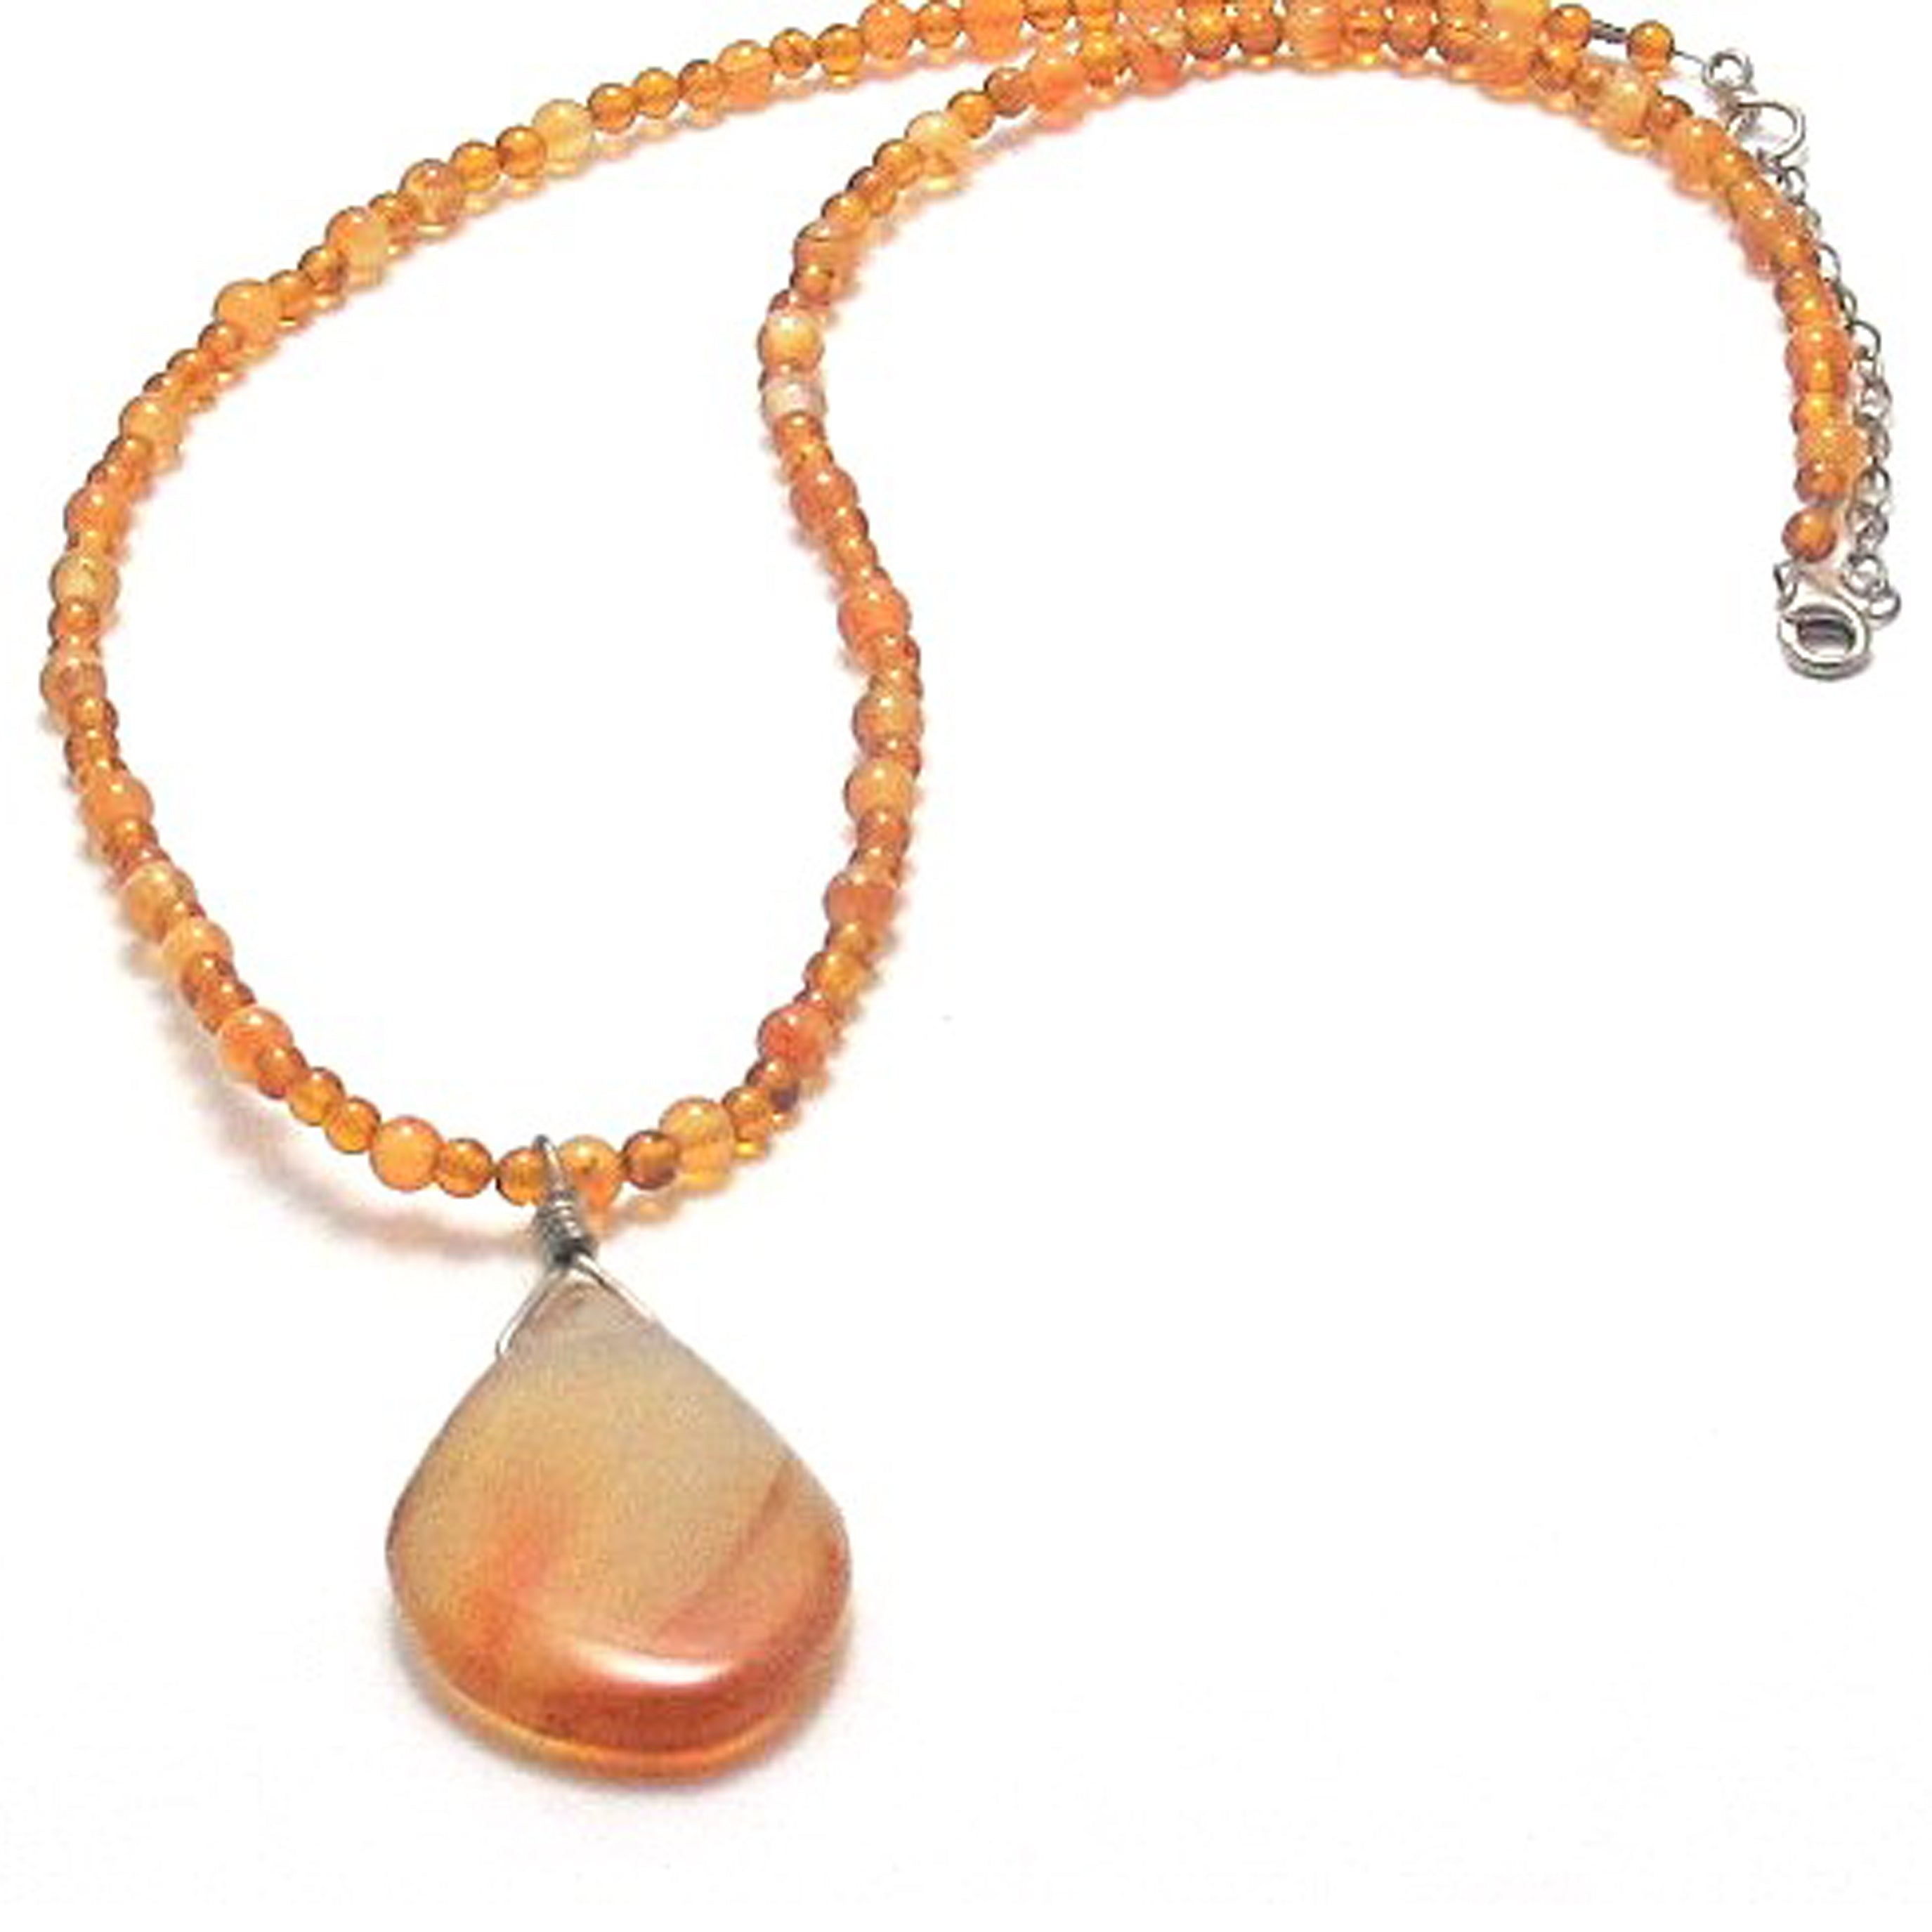 Amber with red agate pendant necklace brenna stone jewelry amber with red agate pendant necklace brenna stone jewelry aloadofball Choice Image